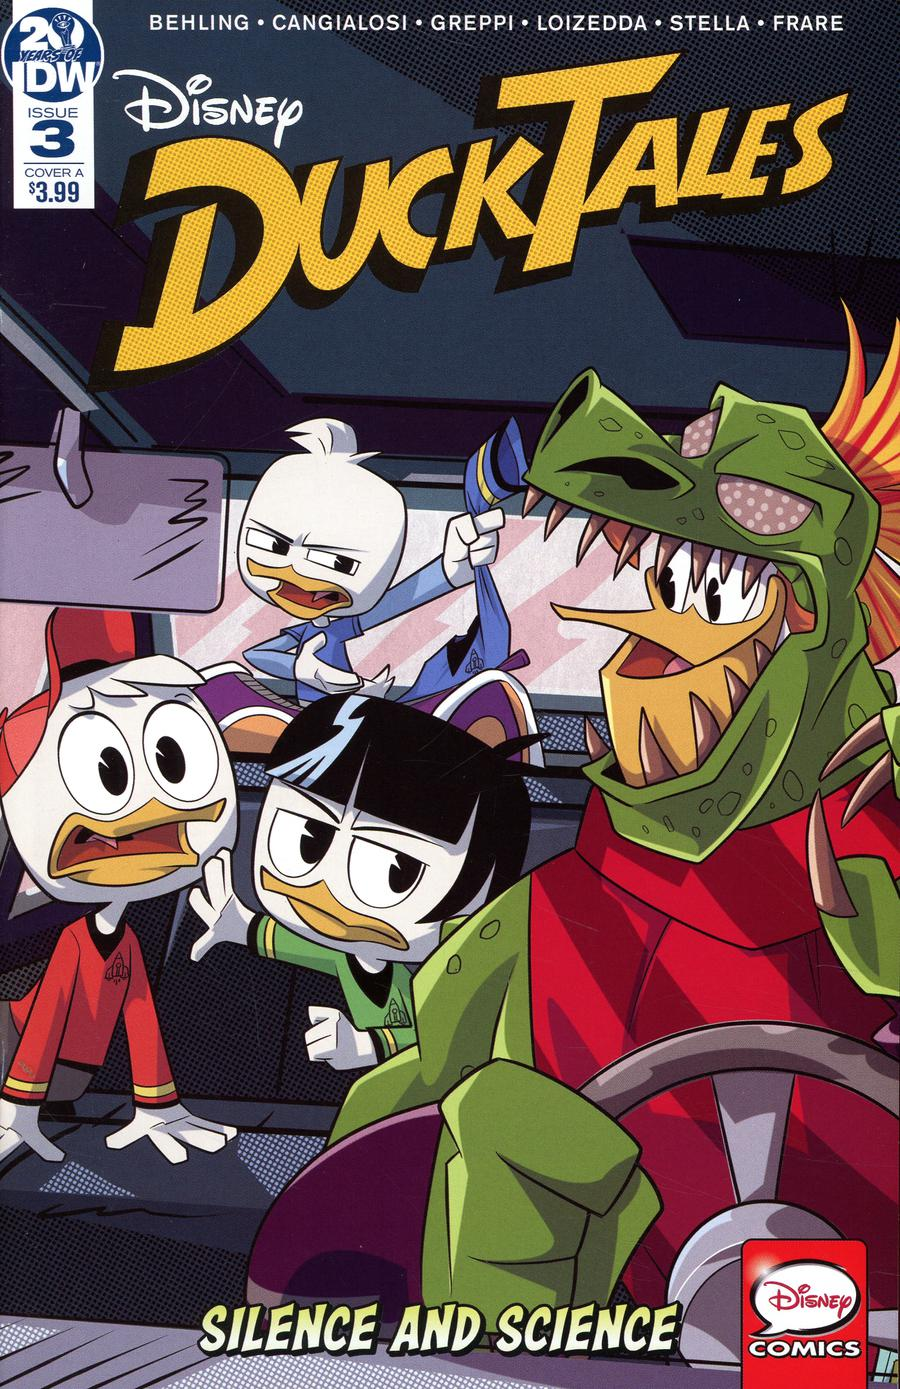 Ducktales Silence And Science #3 Cover A Regular Cover